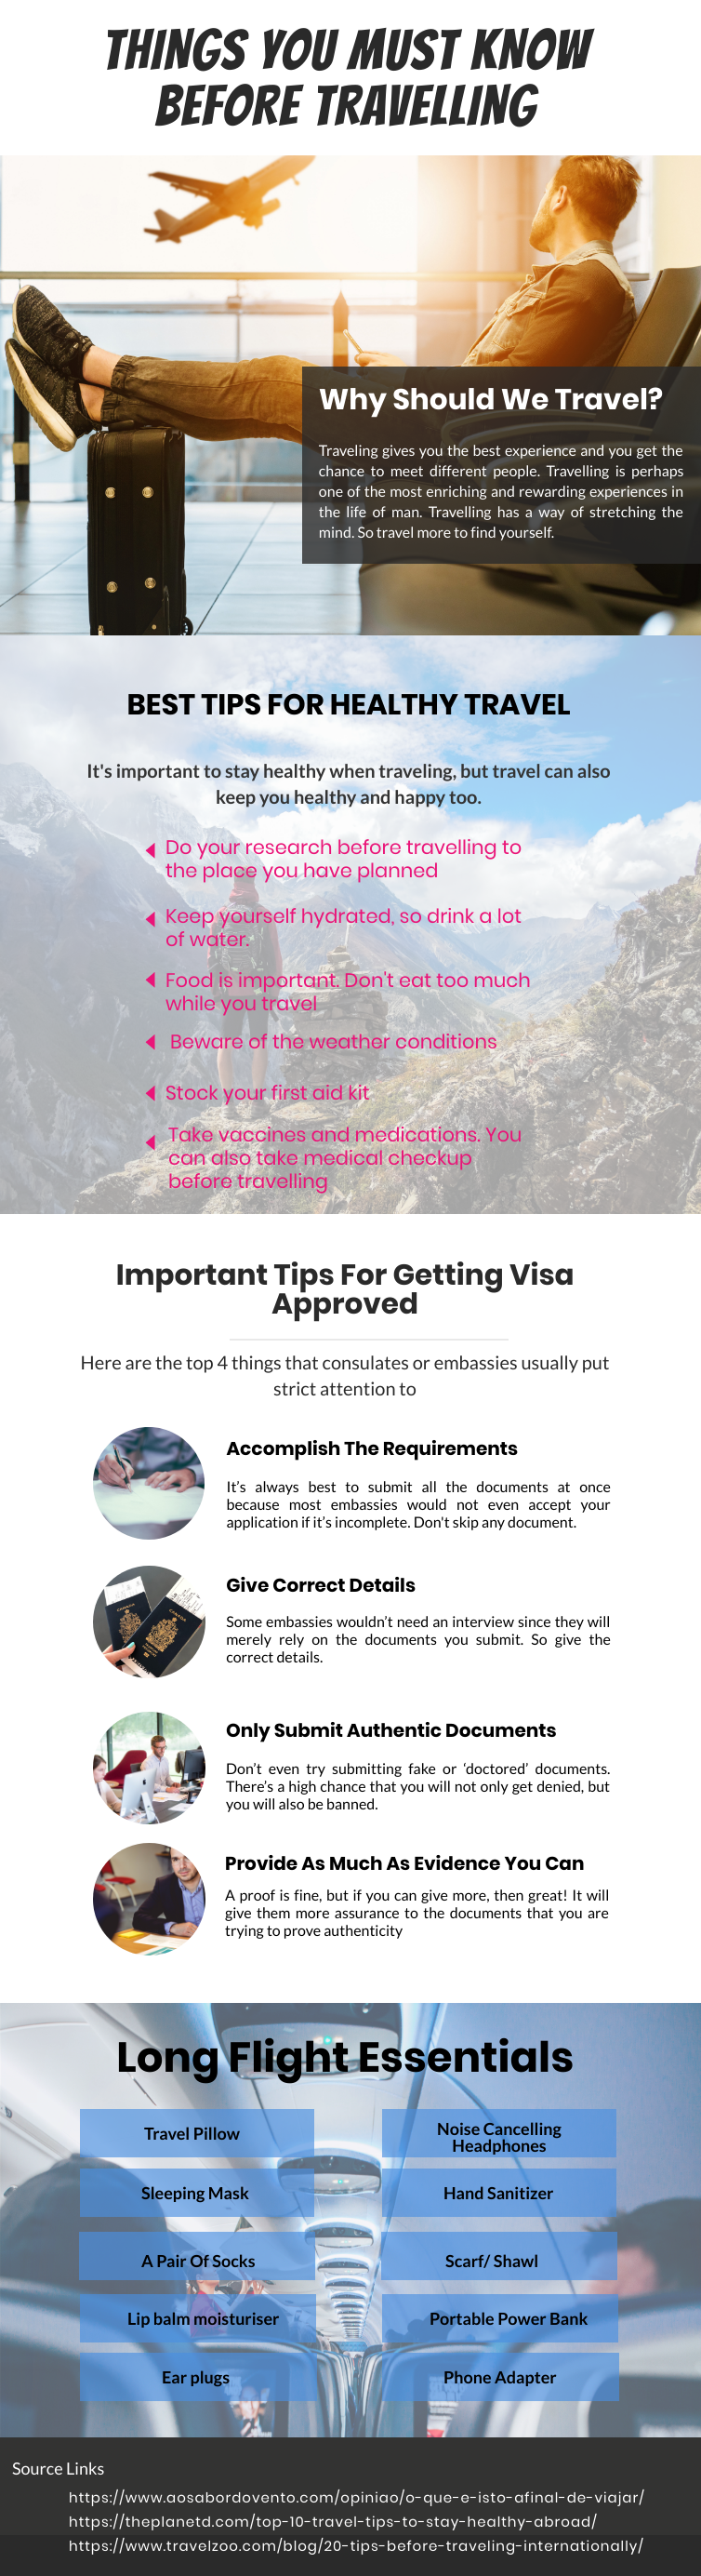 How to get a USA Visa